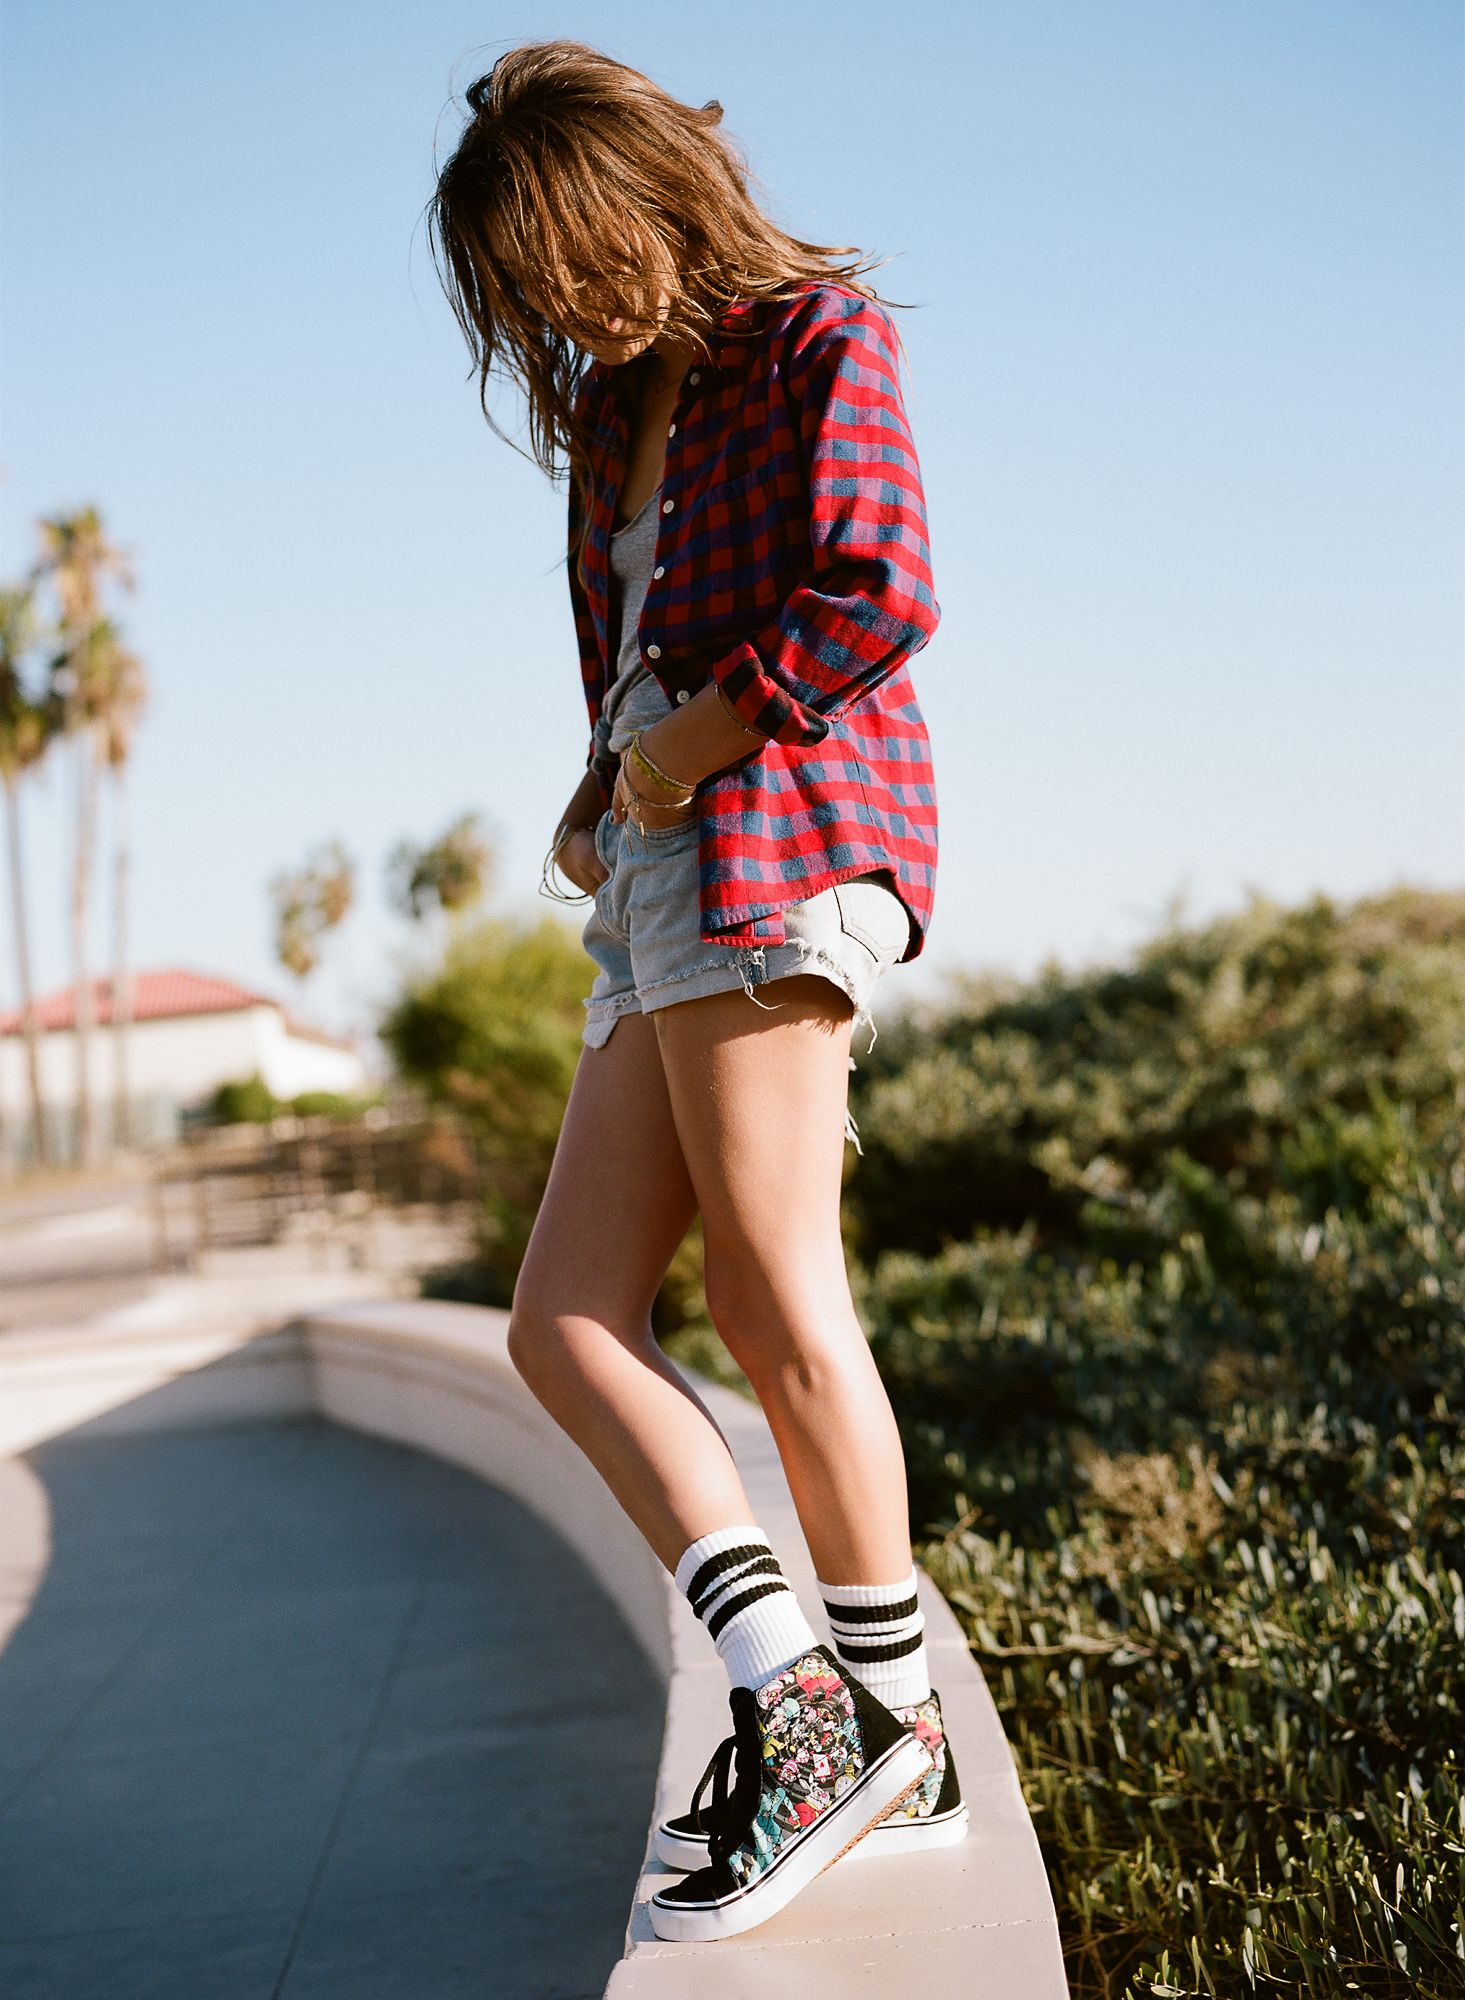 55669302e663 Stay in a Summer State of Mind with the Disney and Vans Collection ...